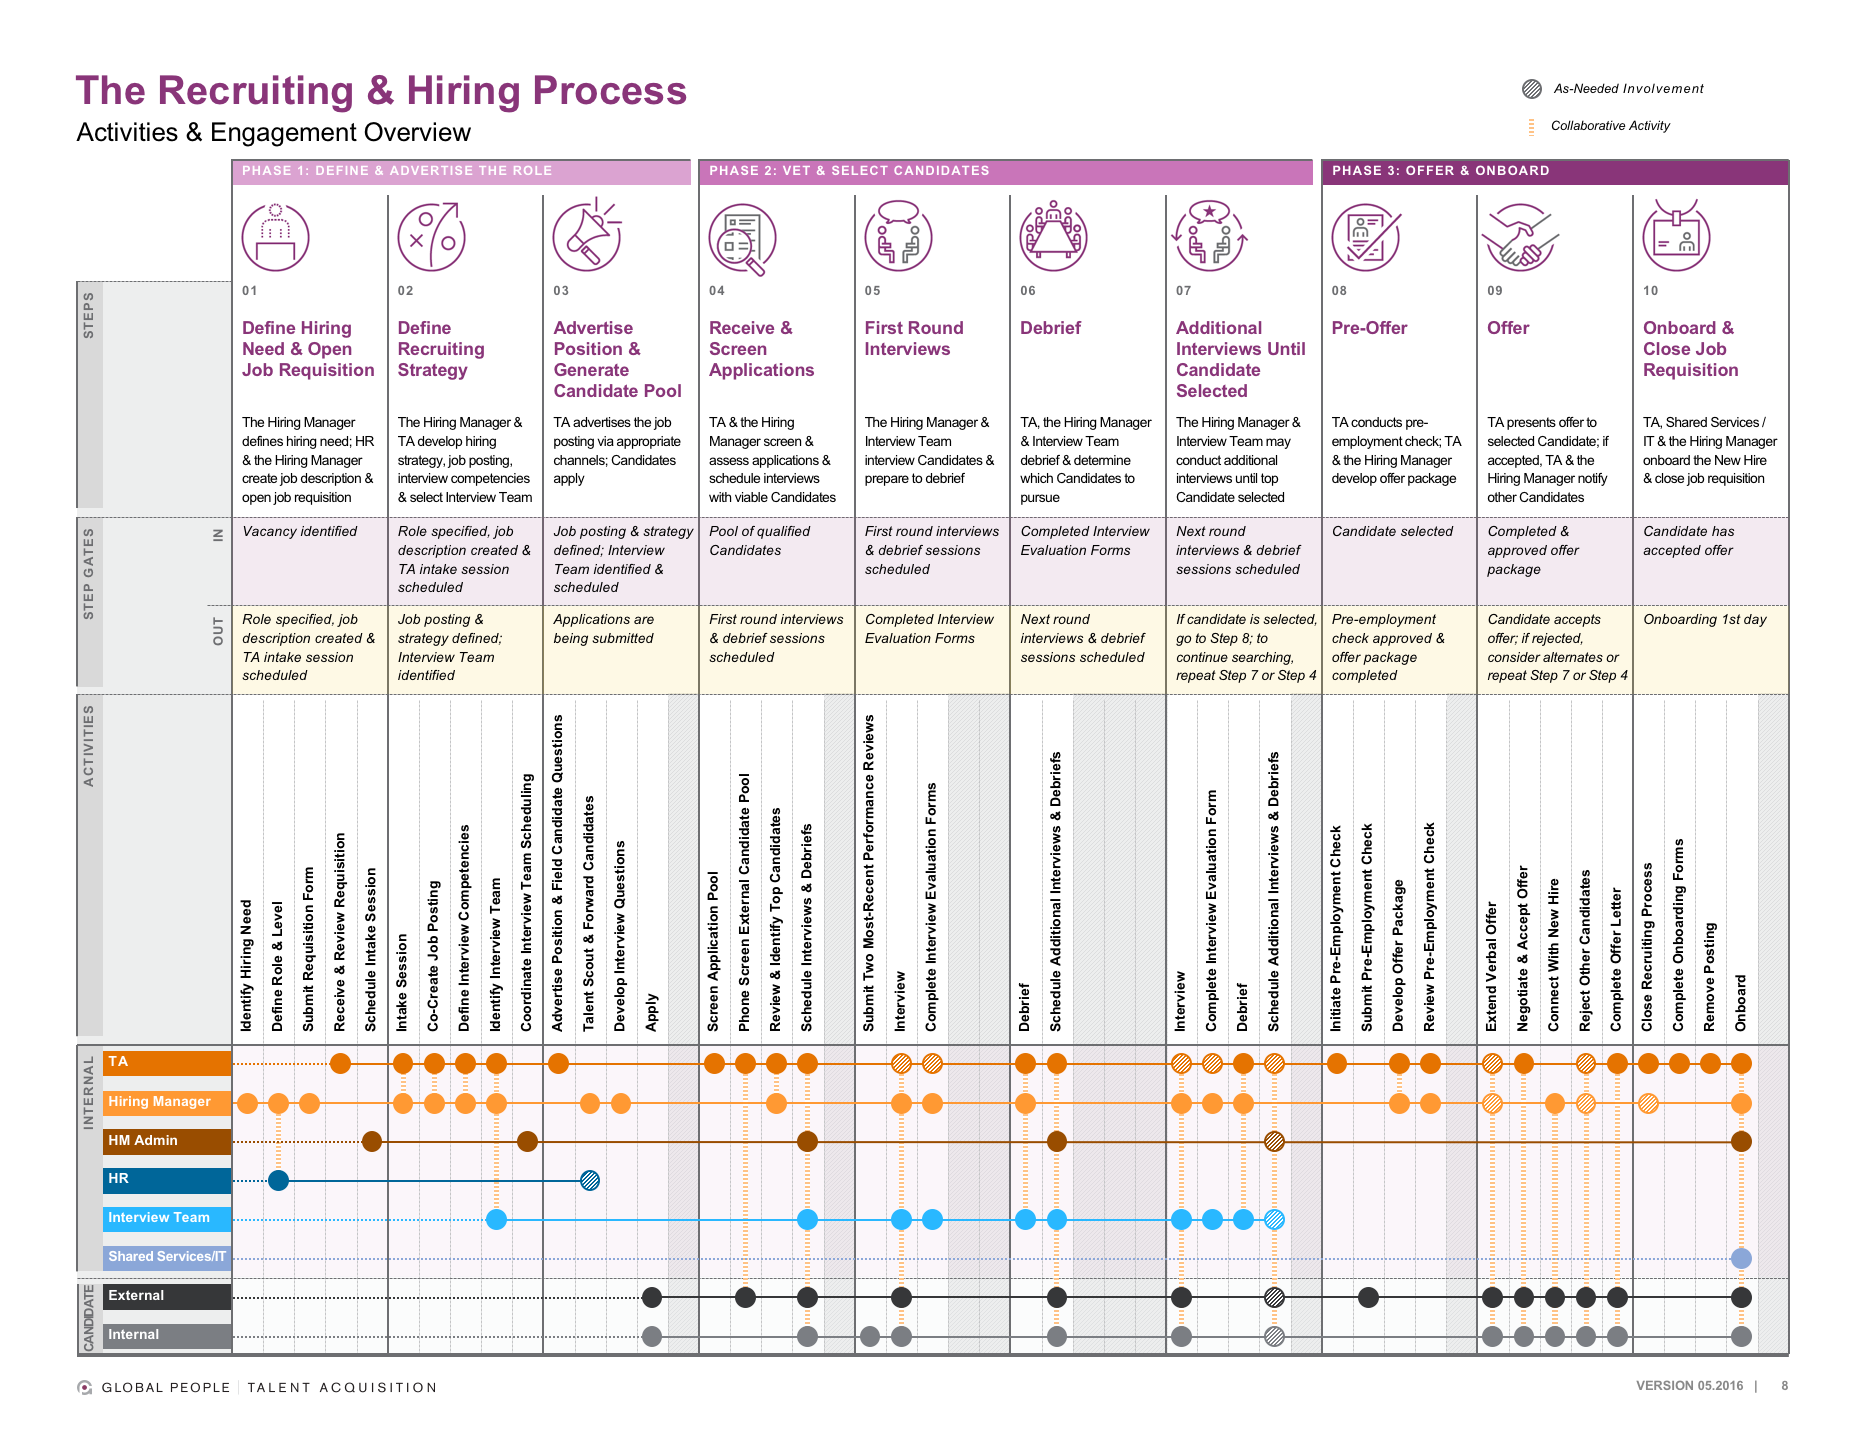 We developed an easy-to-follow grid highlighting all the phases, steps, activities and people involved in the hiring process for a global corporation.